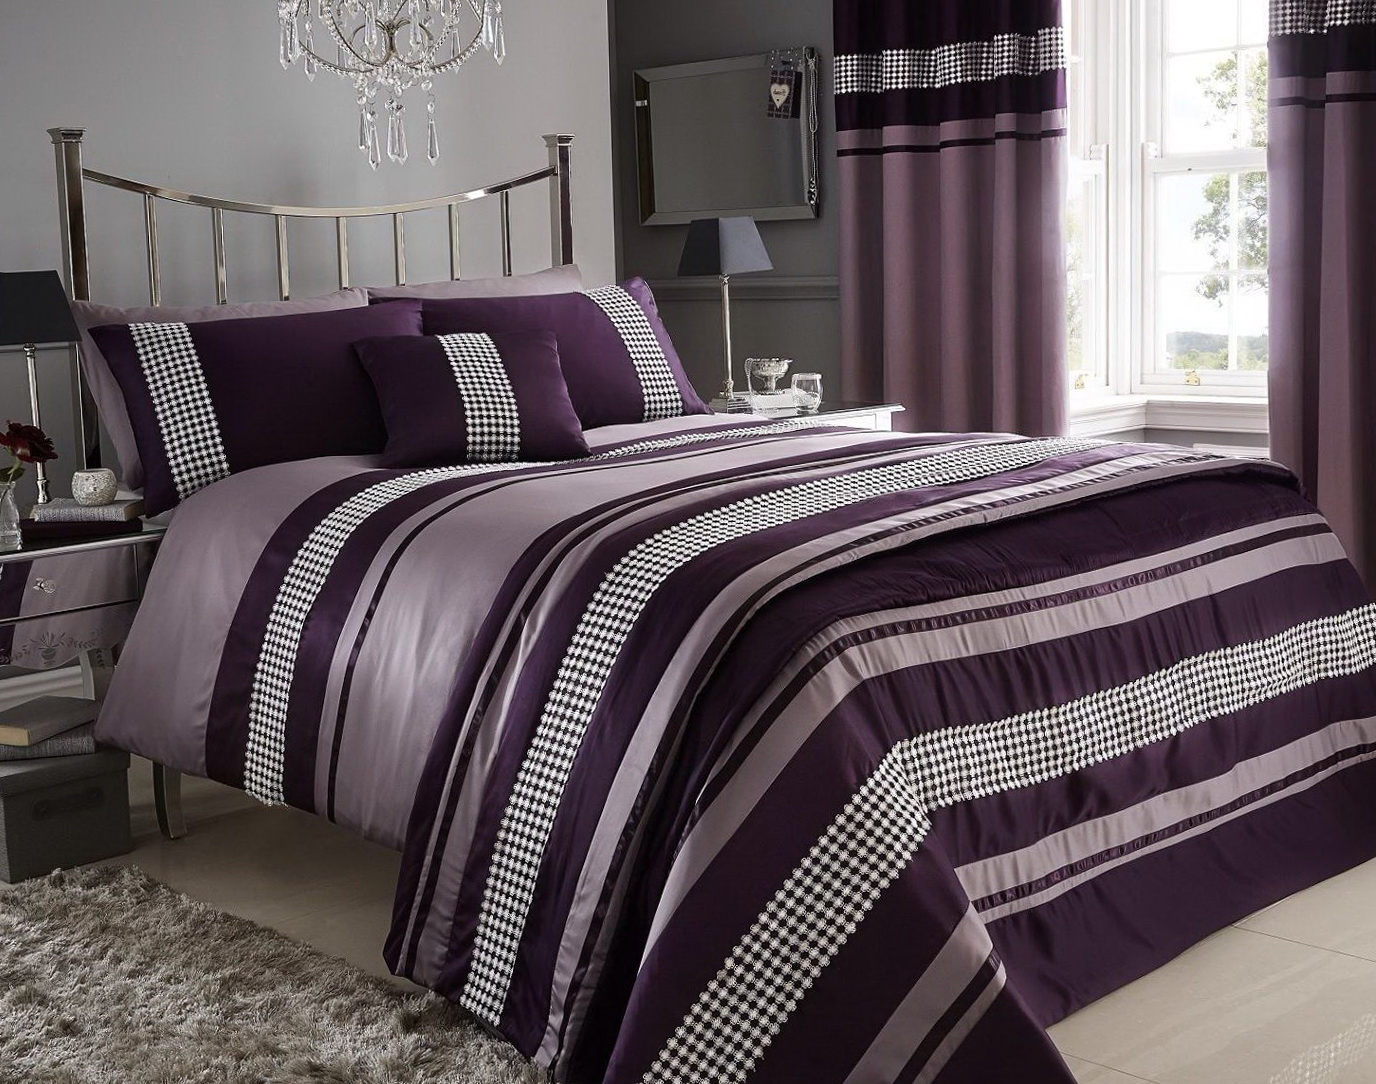 Bedspreads And Curtains To Match Uk Home Design Ideas